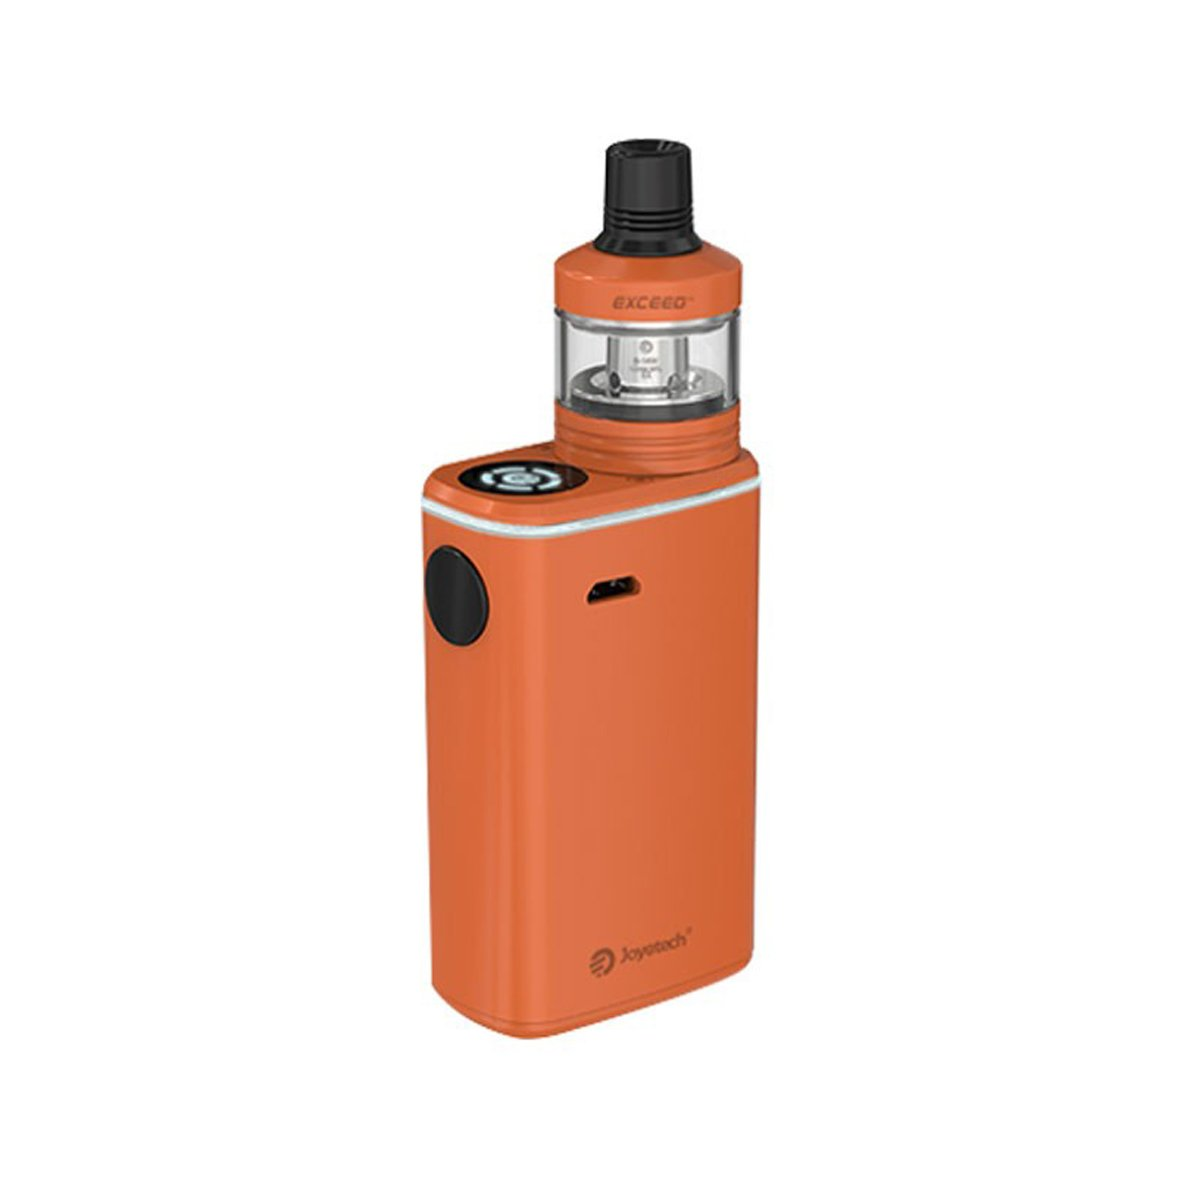 Joyetech Exceed Box 50W 3000mAh Starter Kit With Exceed D22 Tank